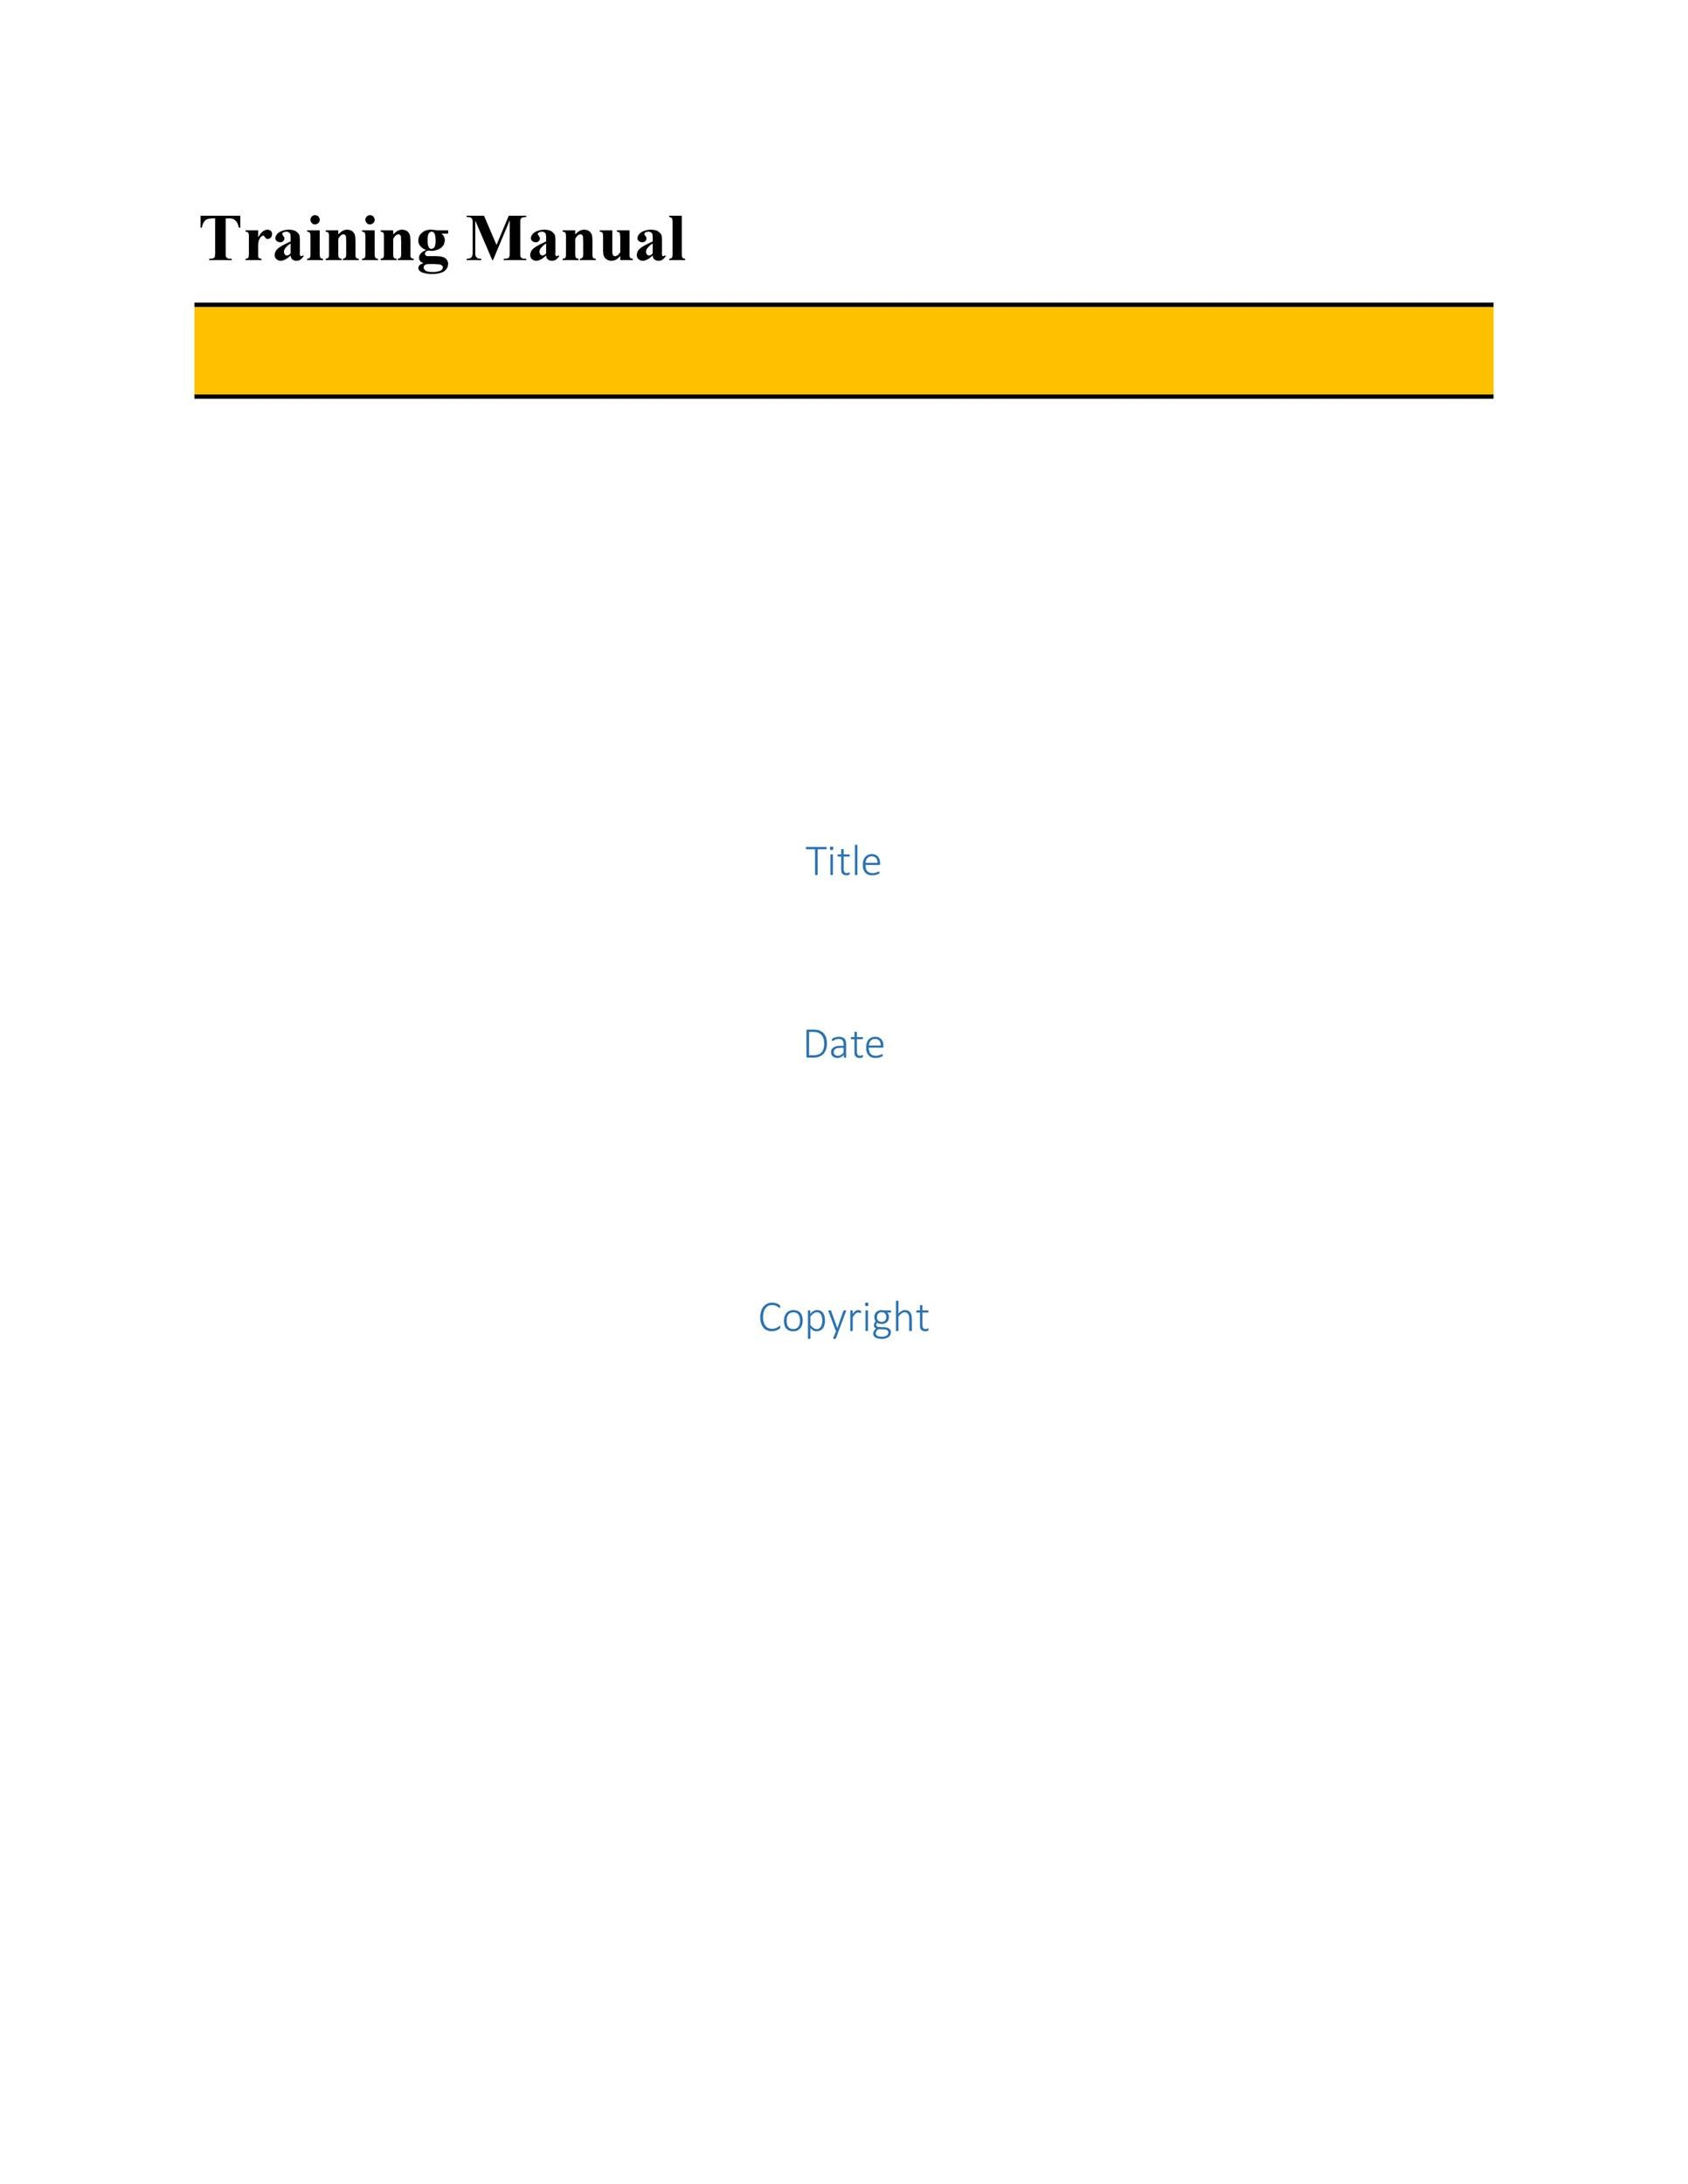 Free training manual template 22